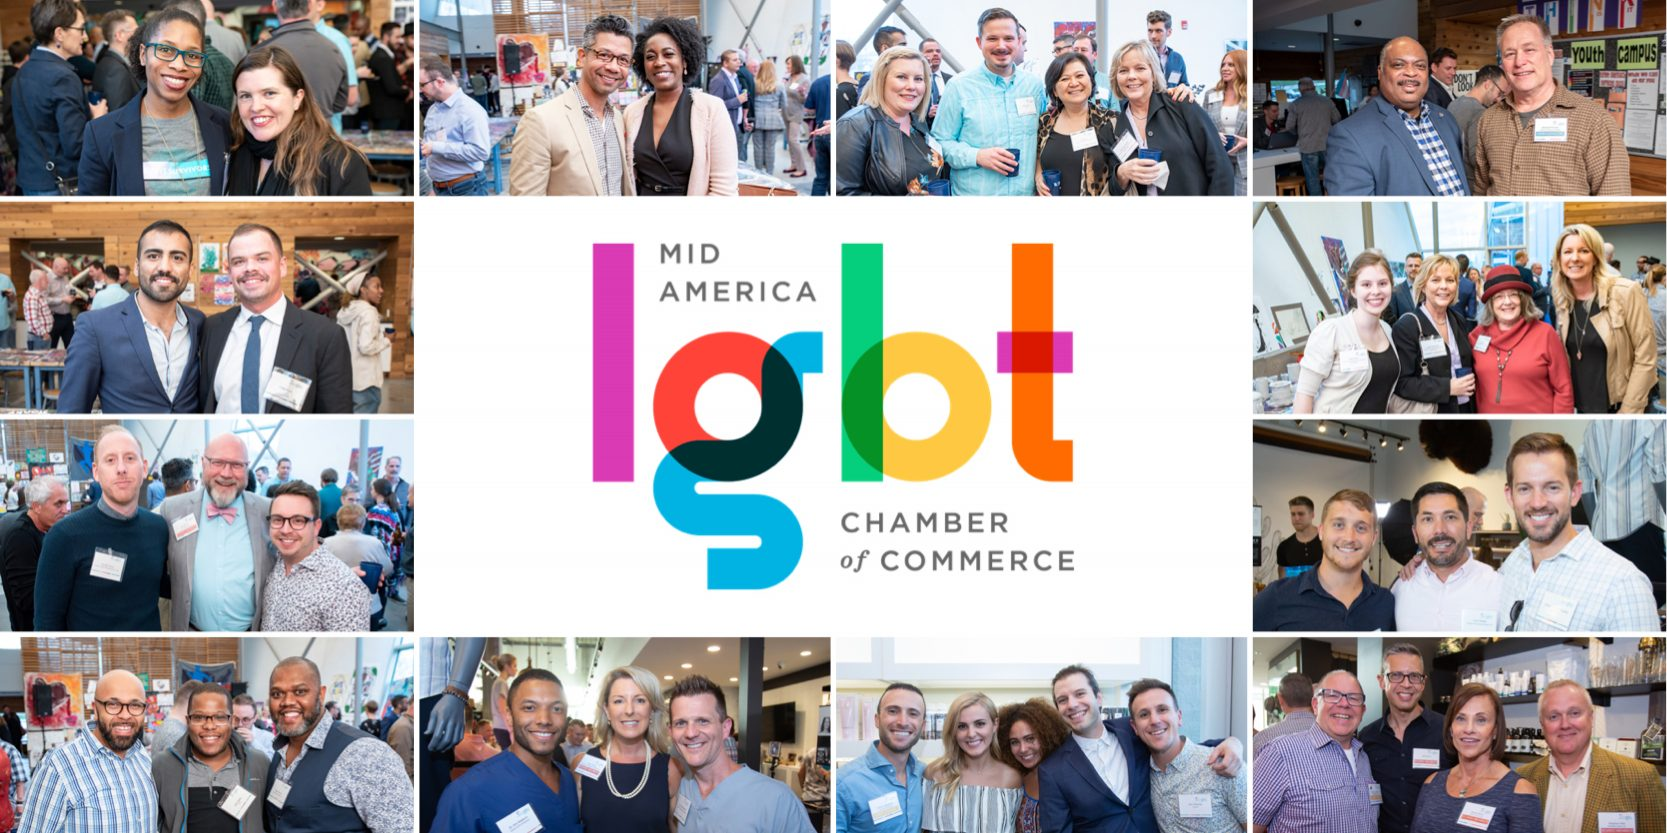 mid_america_lgbt-feature_image-branding_reveal_sept19-3